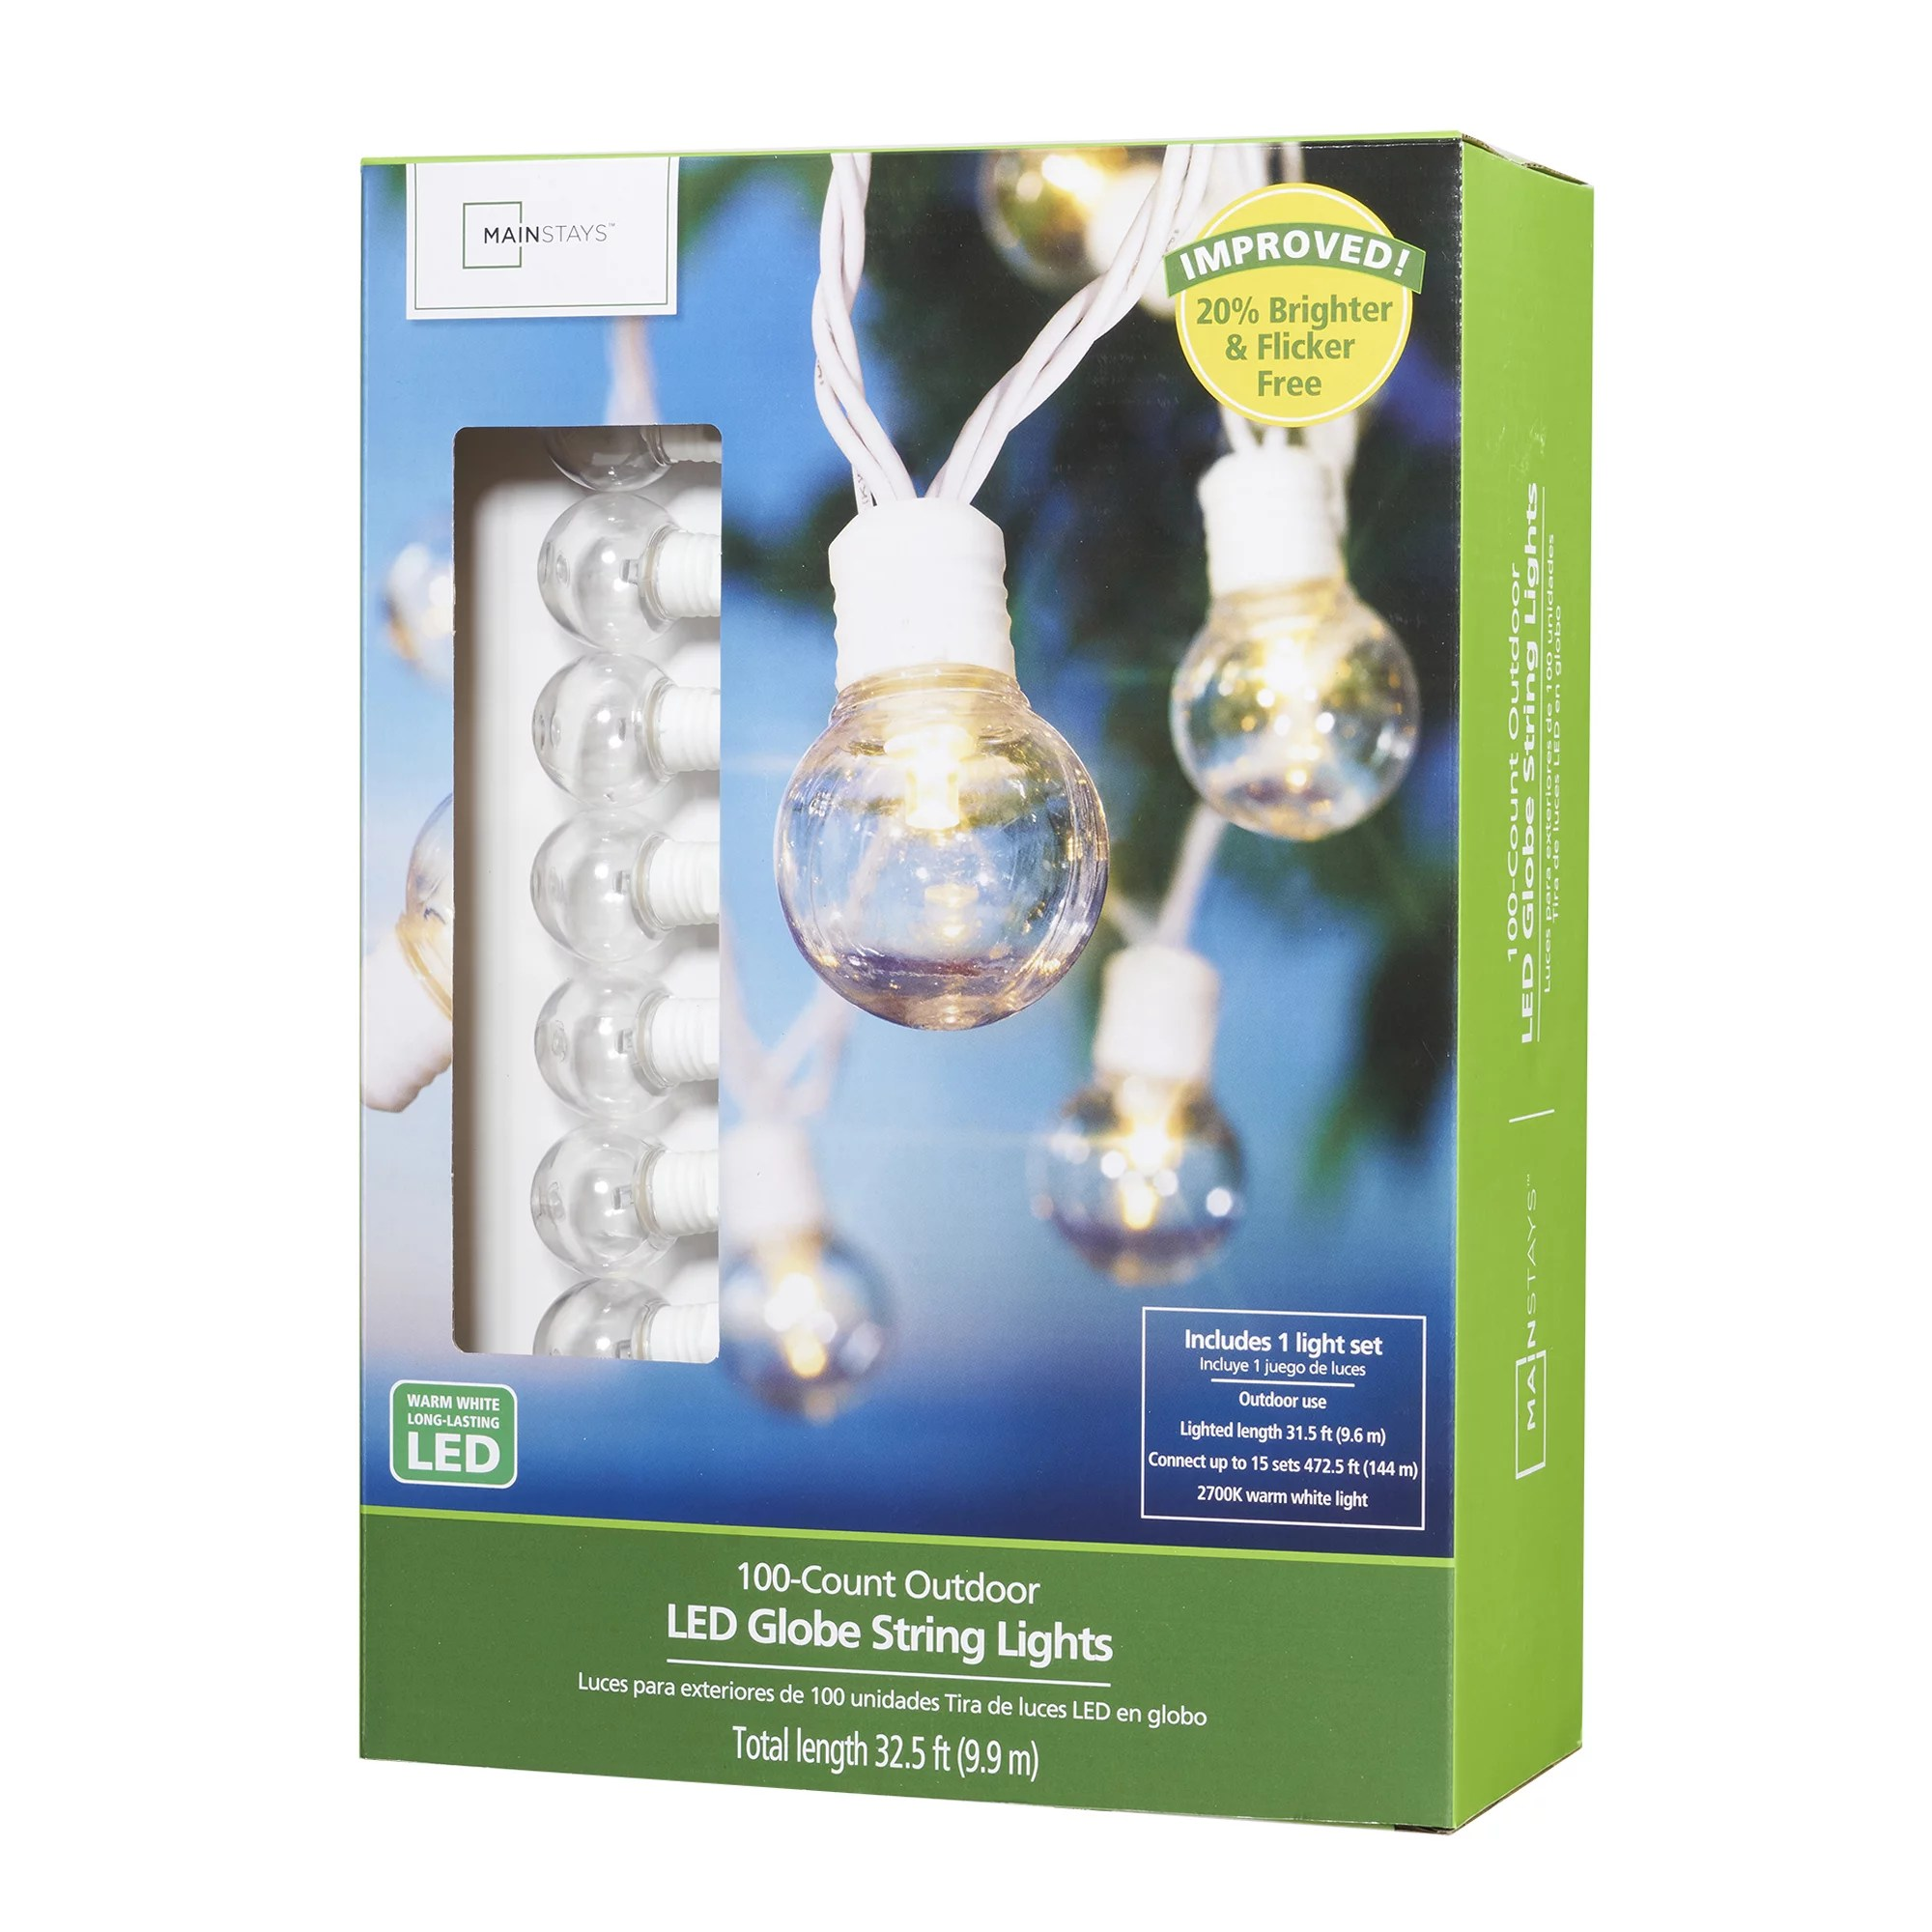 mainstays 100 count outdoor led globe string lights white wire